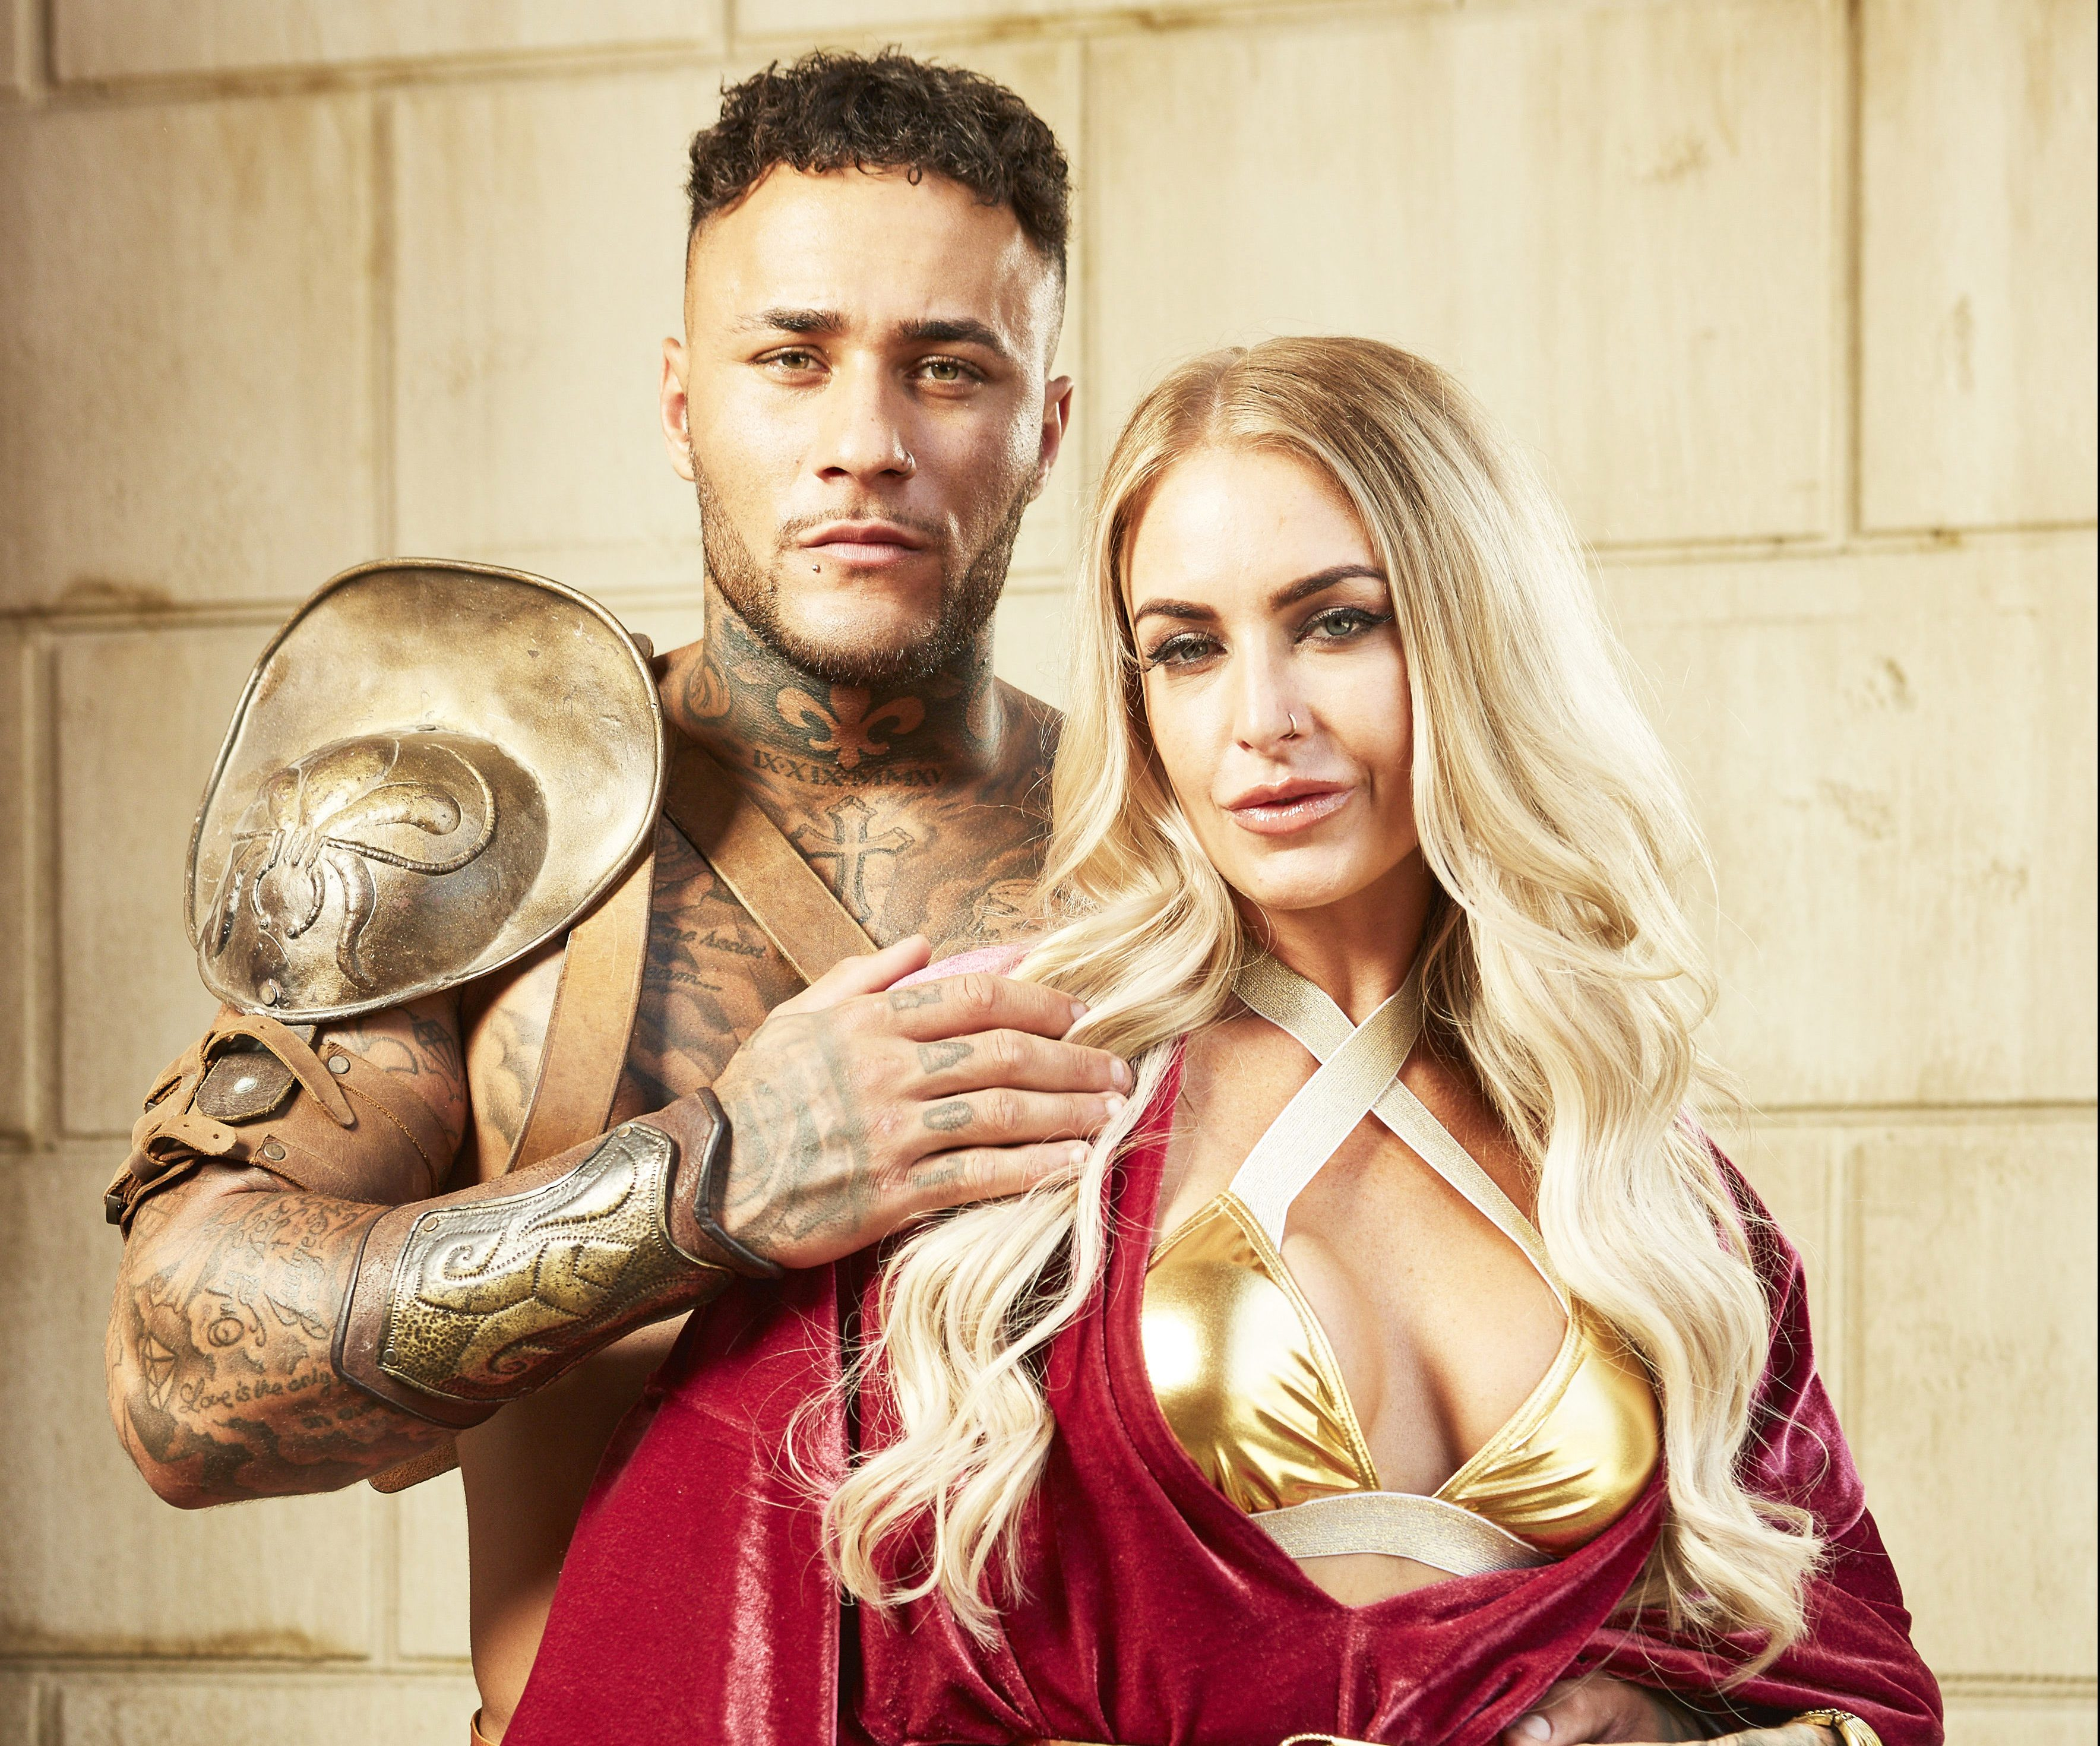 Meet the Bromans couples: Tian and Natalie on being squeamish and switching roles